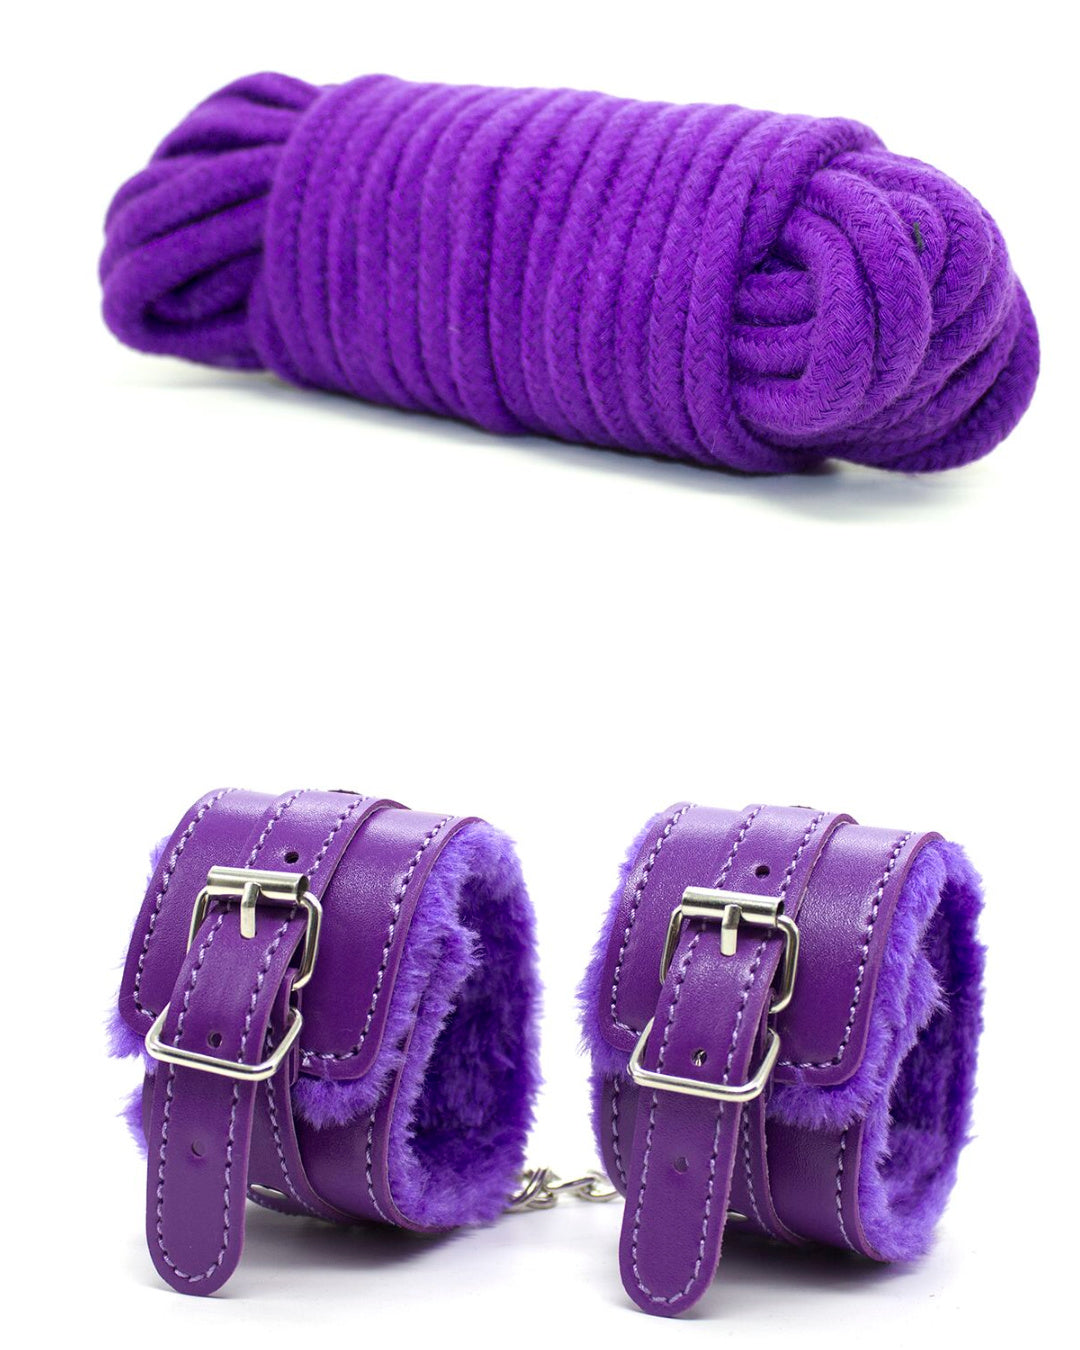 Rope and cuffs from the Everything Bondage 9 Piece Beginner's Bondage Kit - Purple